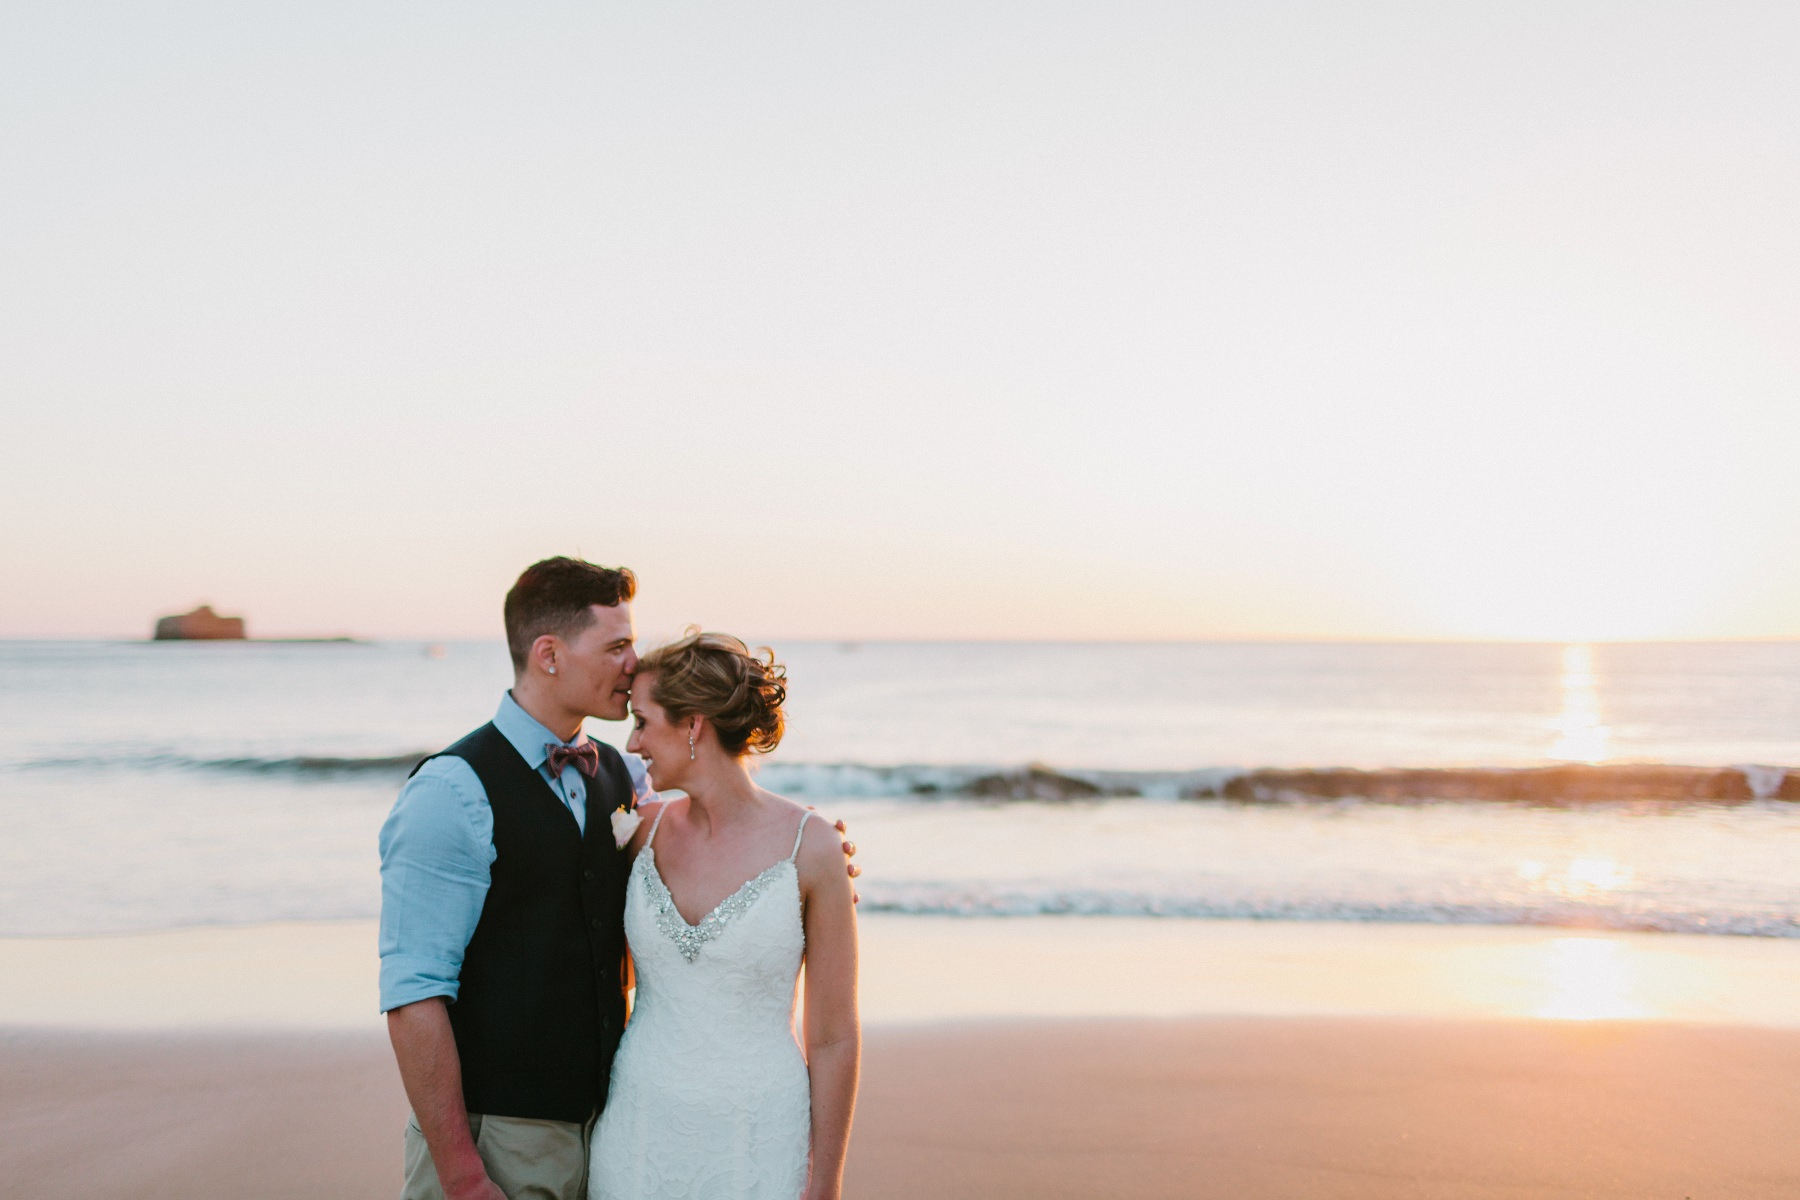 Beach Elopement wedding Nicragua